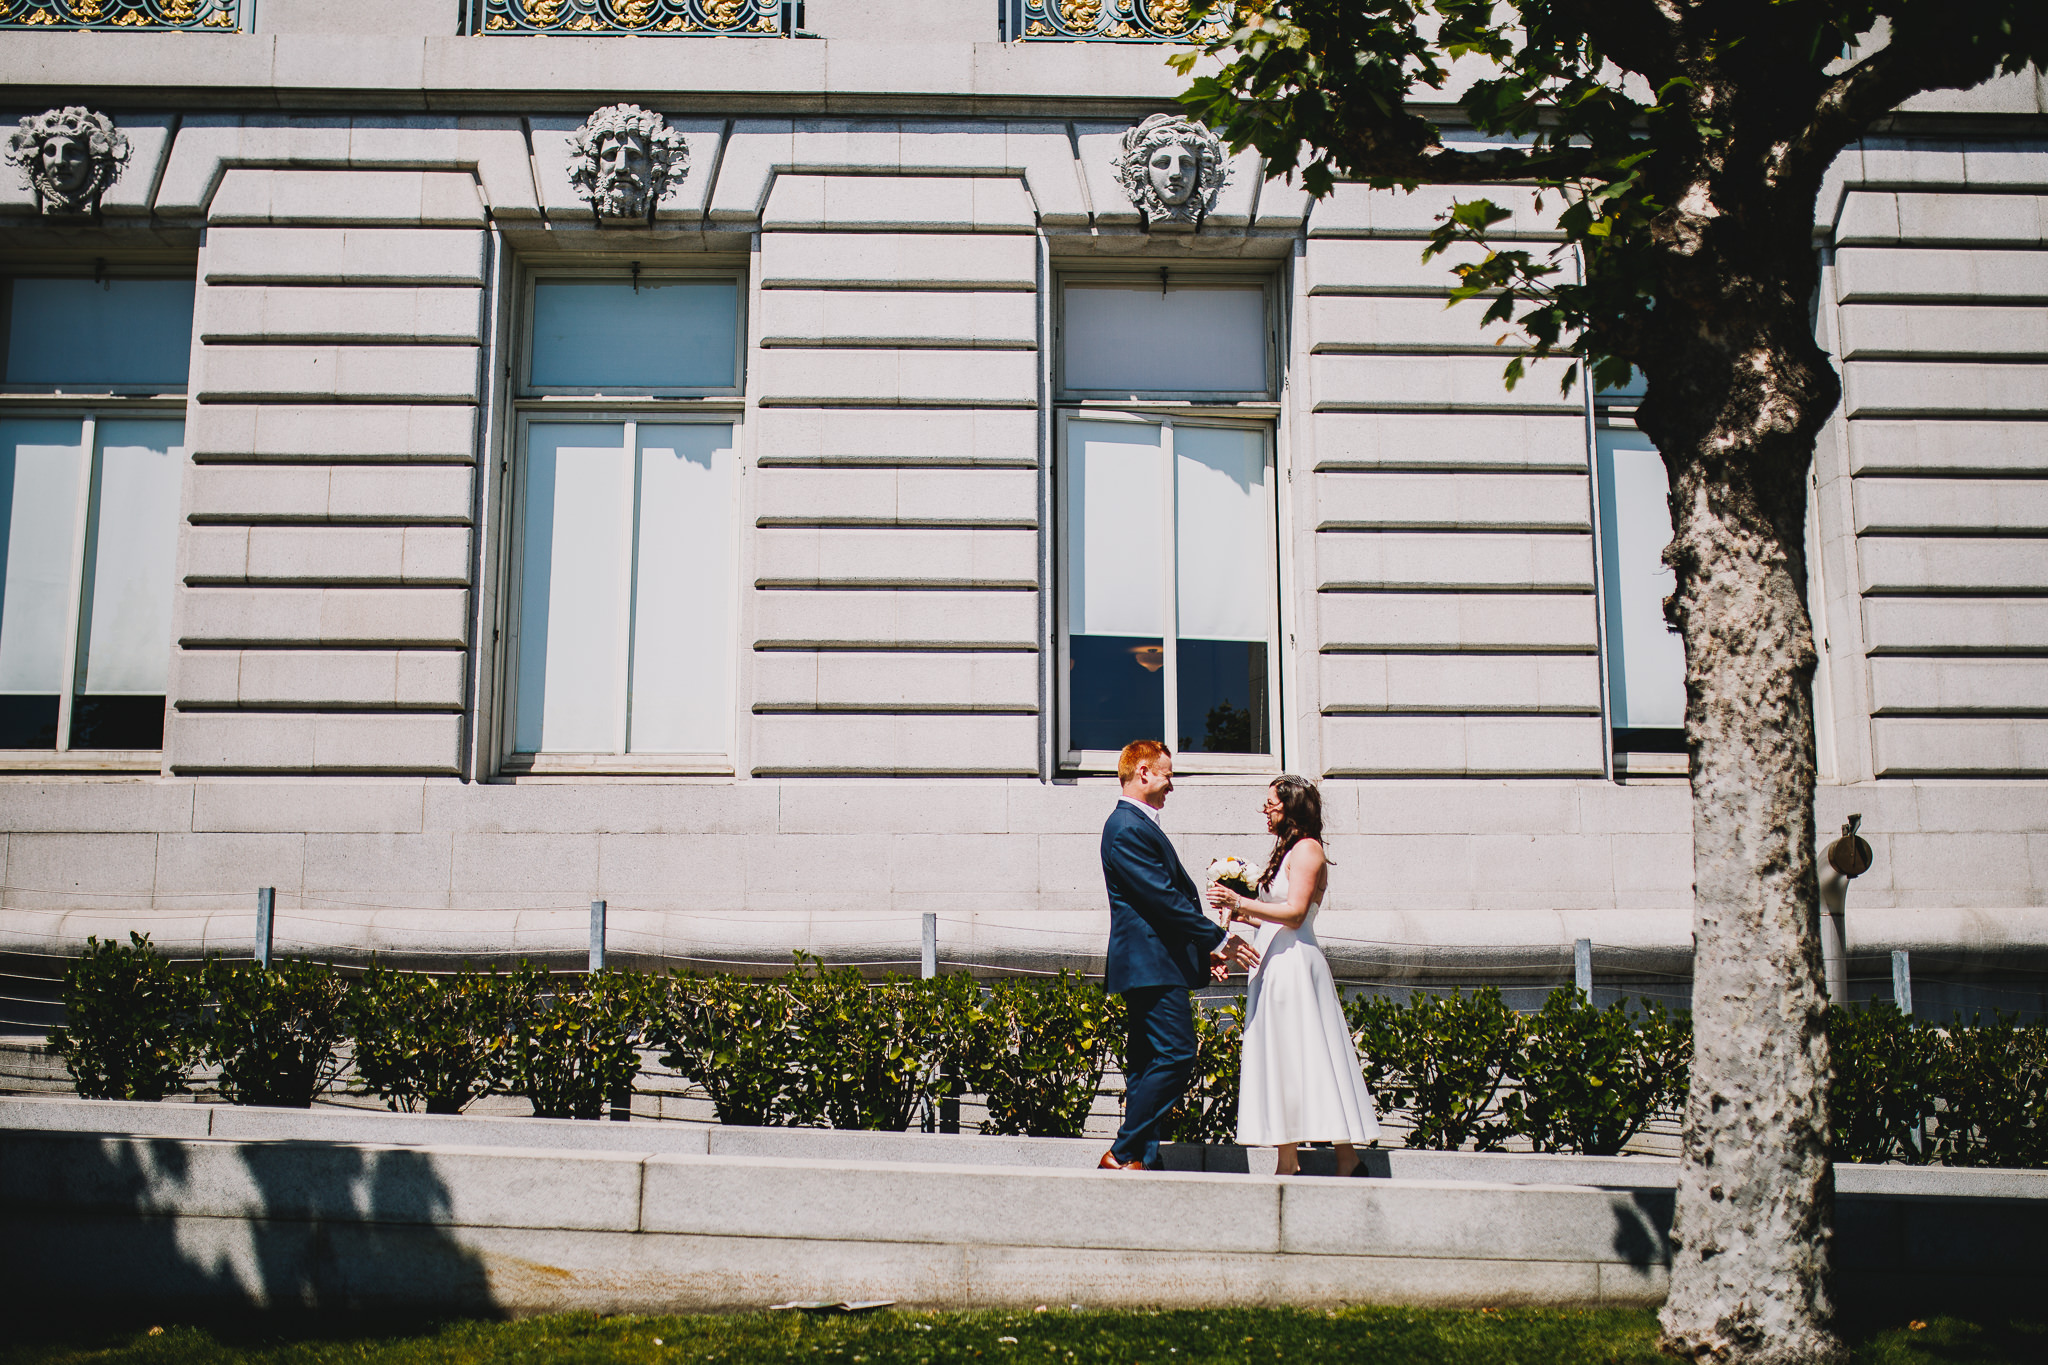 Archer Inspired Photography SF City Hall Elopement Wedding Lifestyle Documentary Affordable Photographer-44.jpg